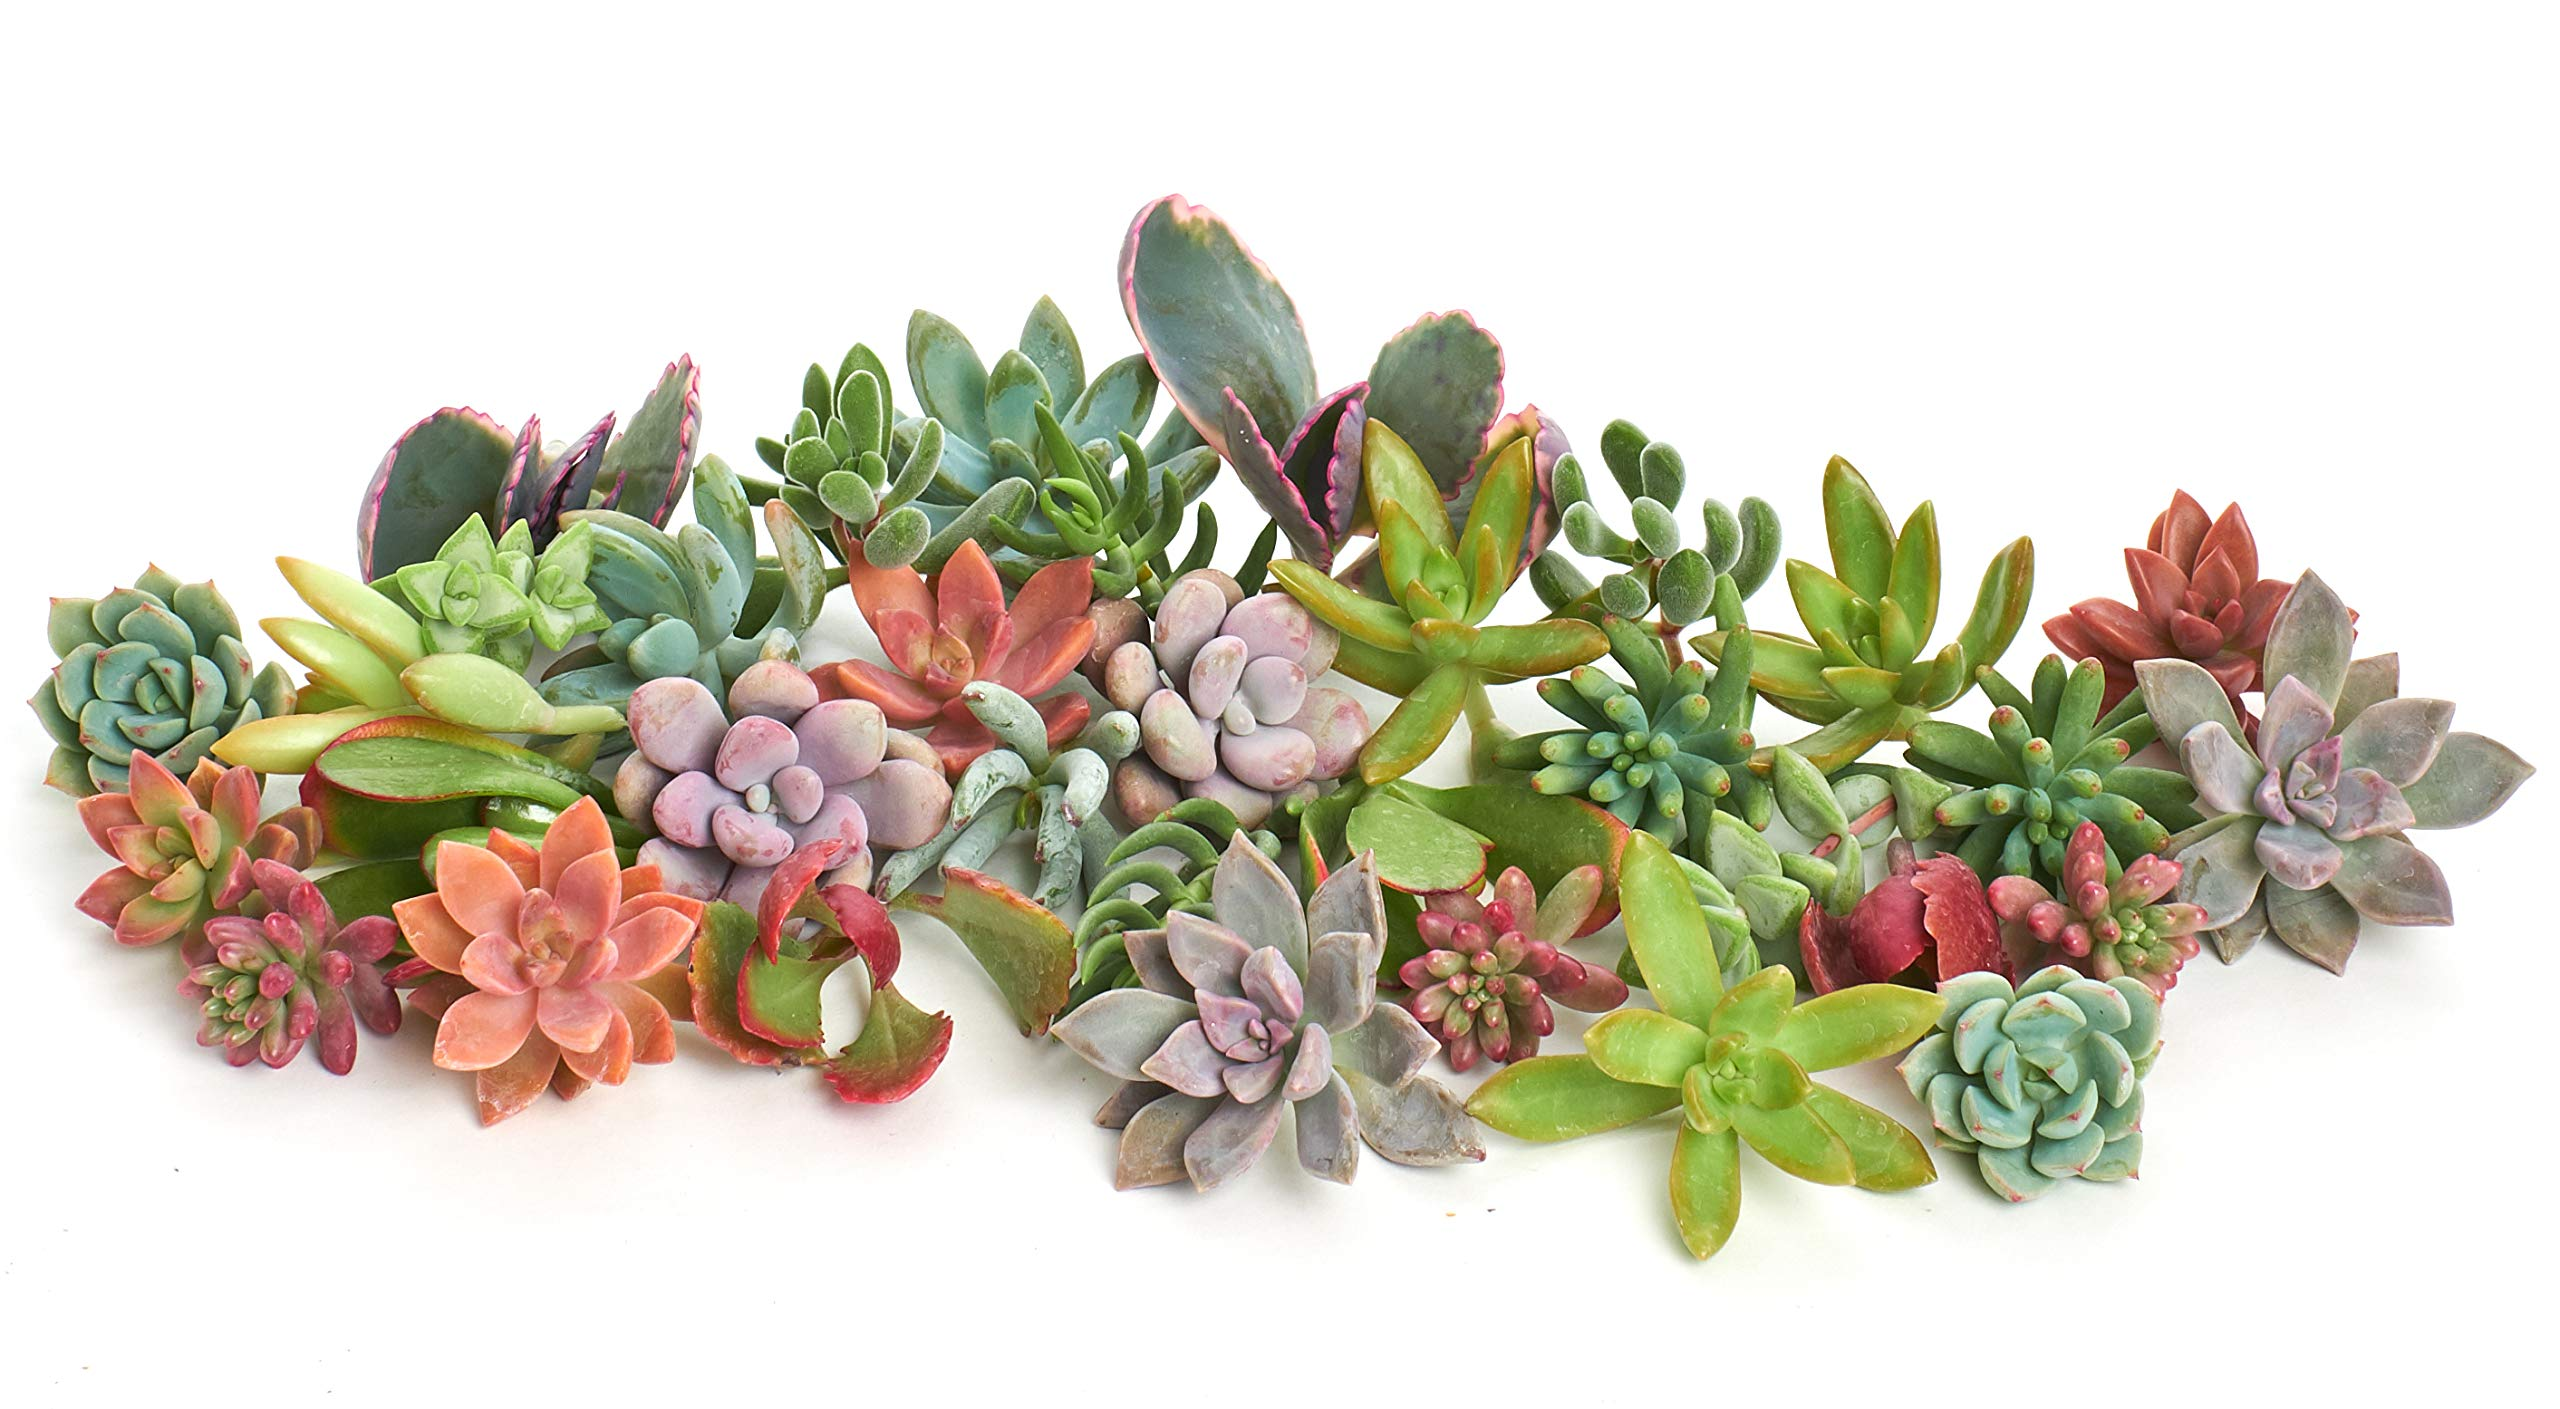 Shop Succulents| Assorted Collection of Live Succulent Cuttings, Hand Selected Variety Pack of Cut Succulents| Collection of 75